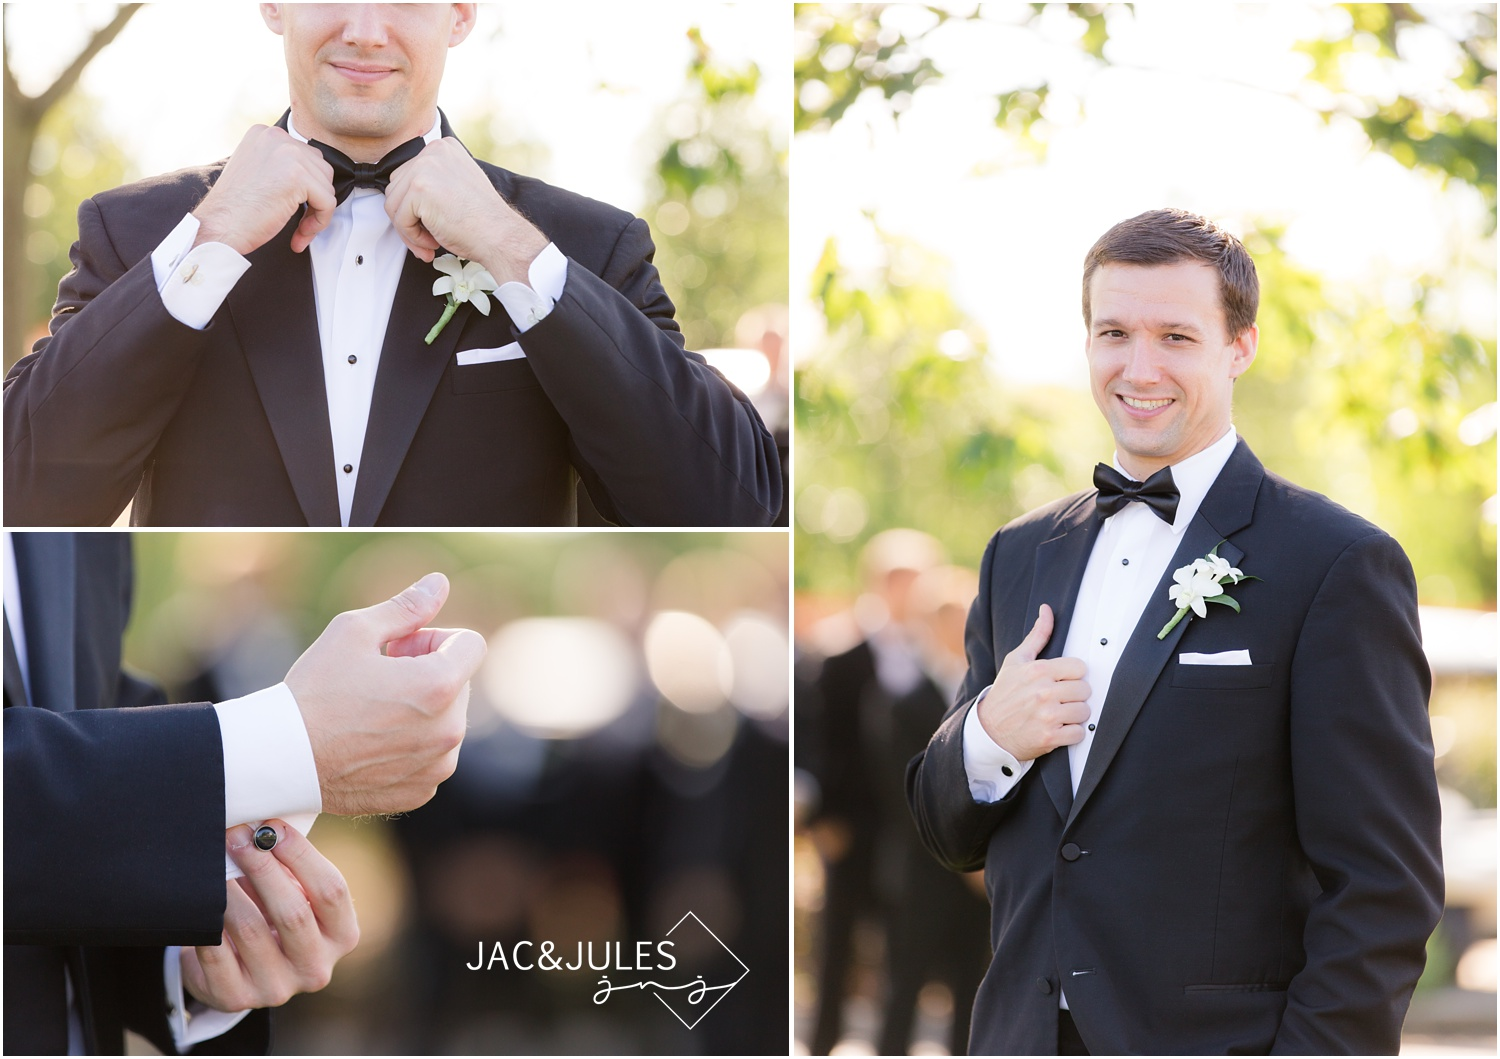 groom portraits at eagle oaks golf and country club in wall, nj.